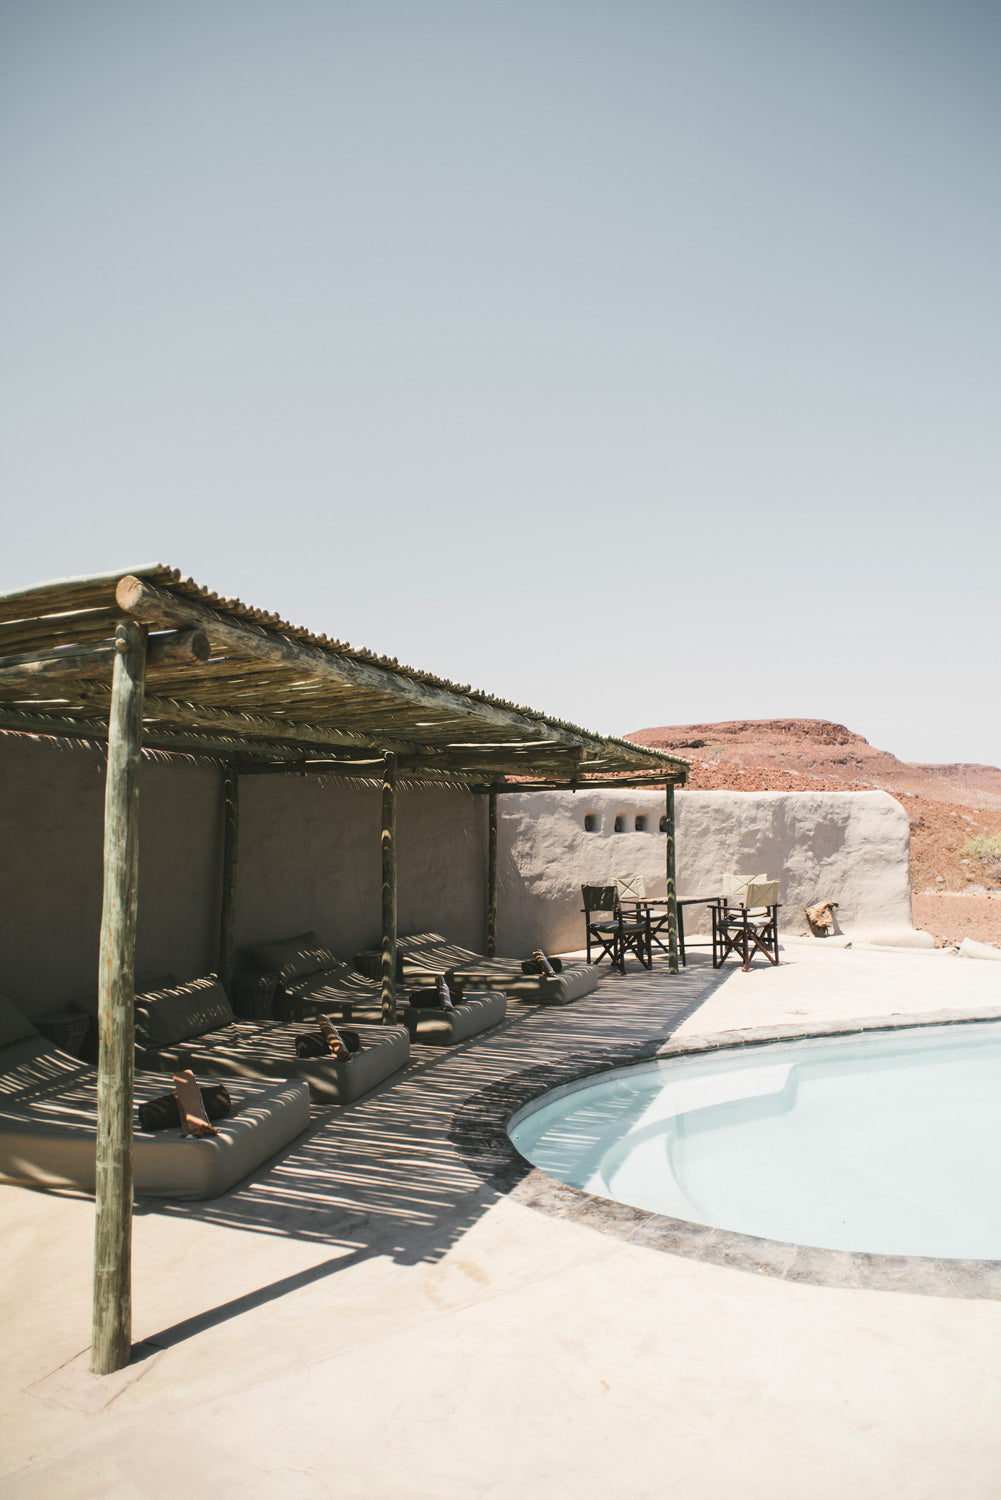 Camp Site, Namibia